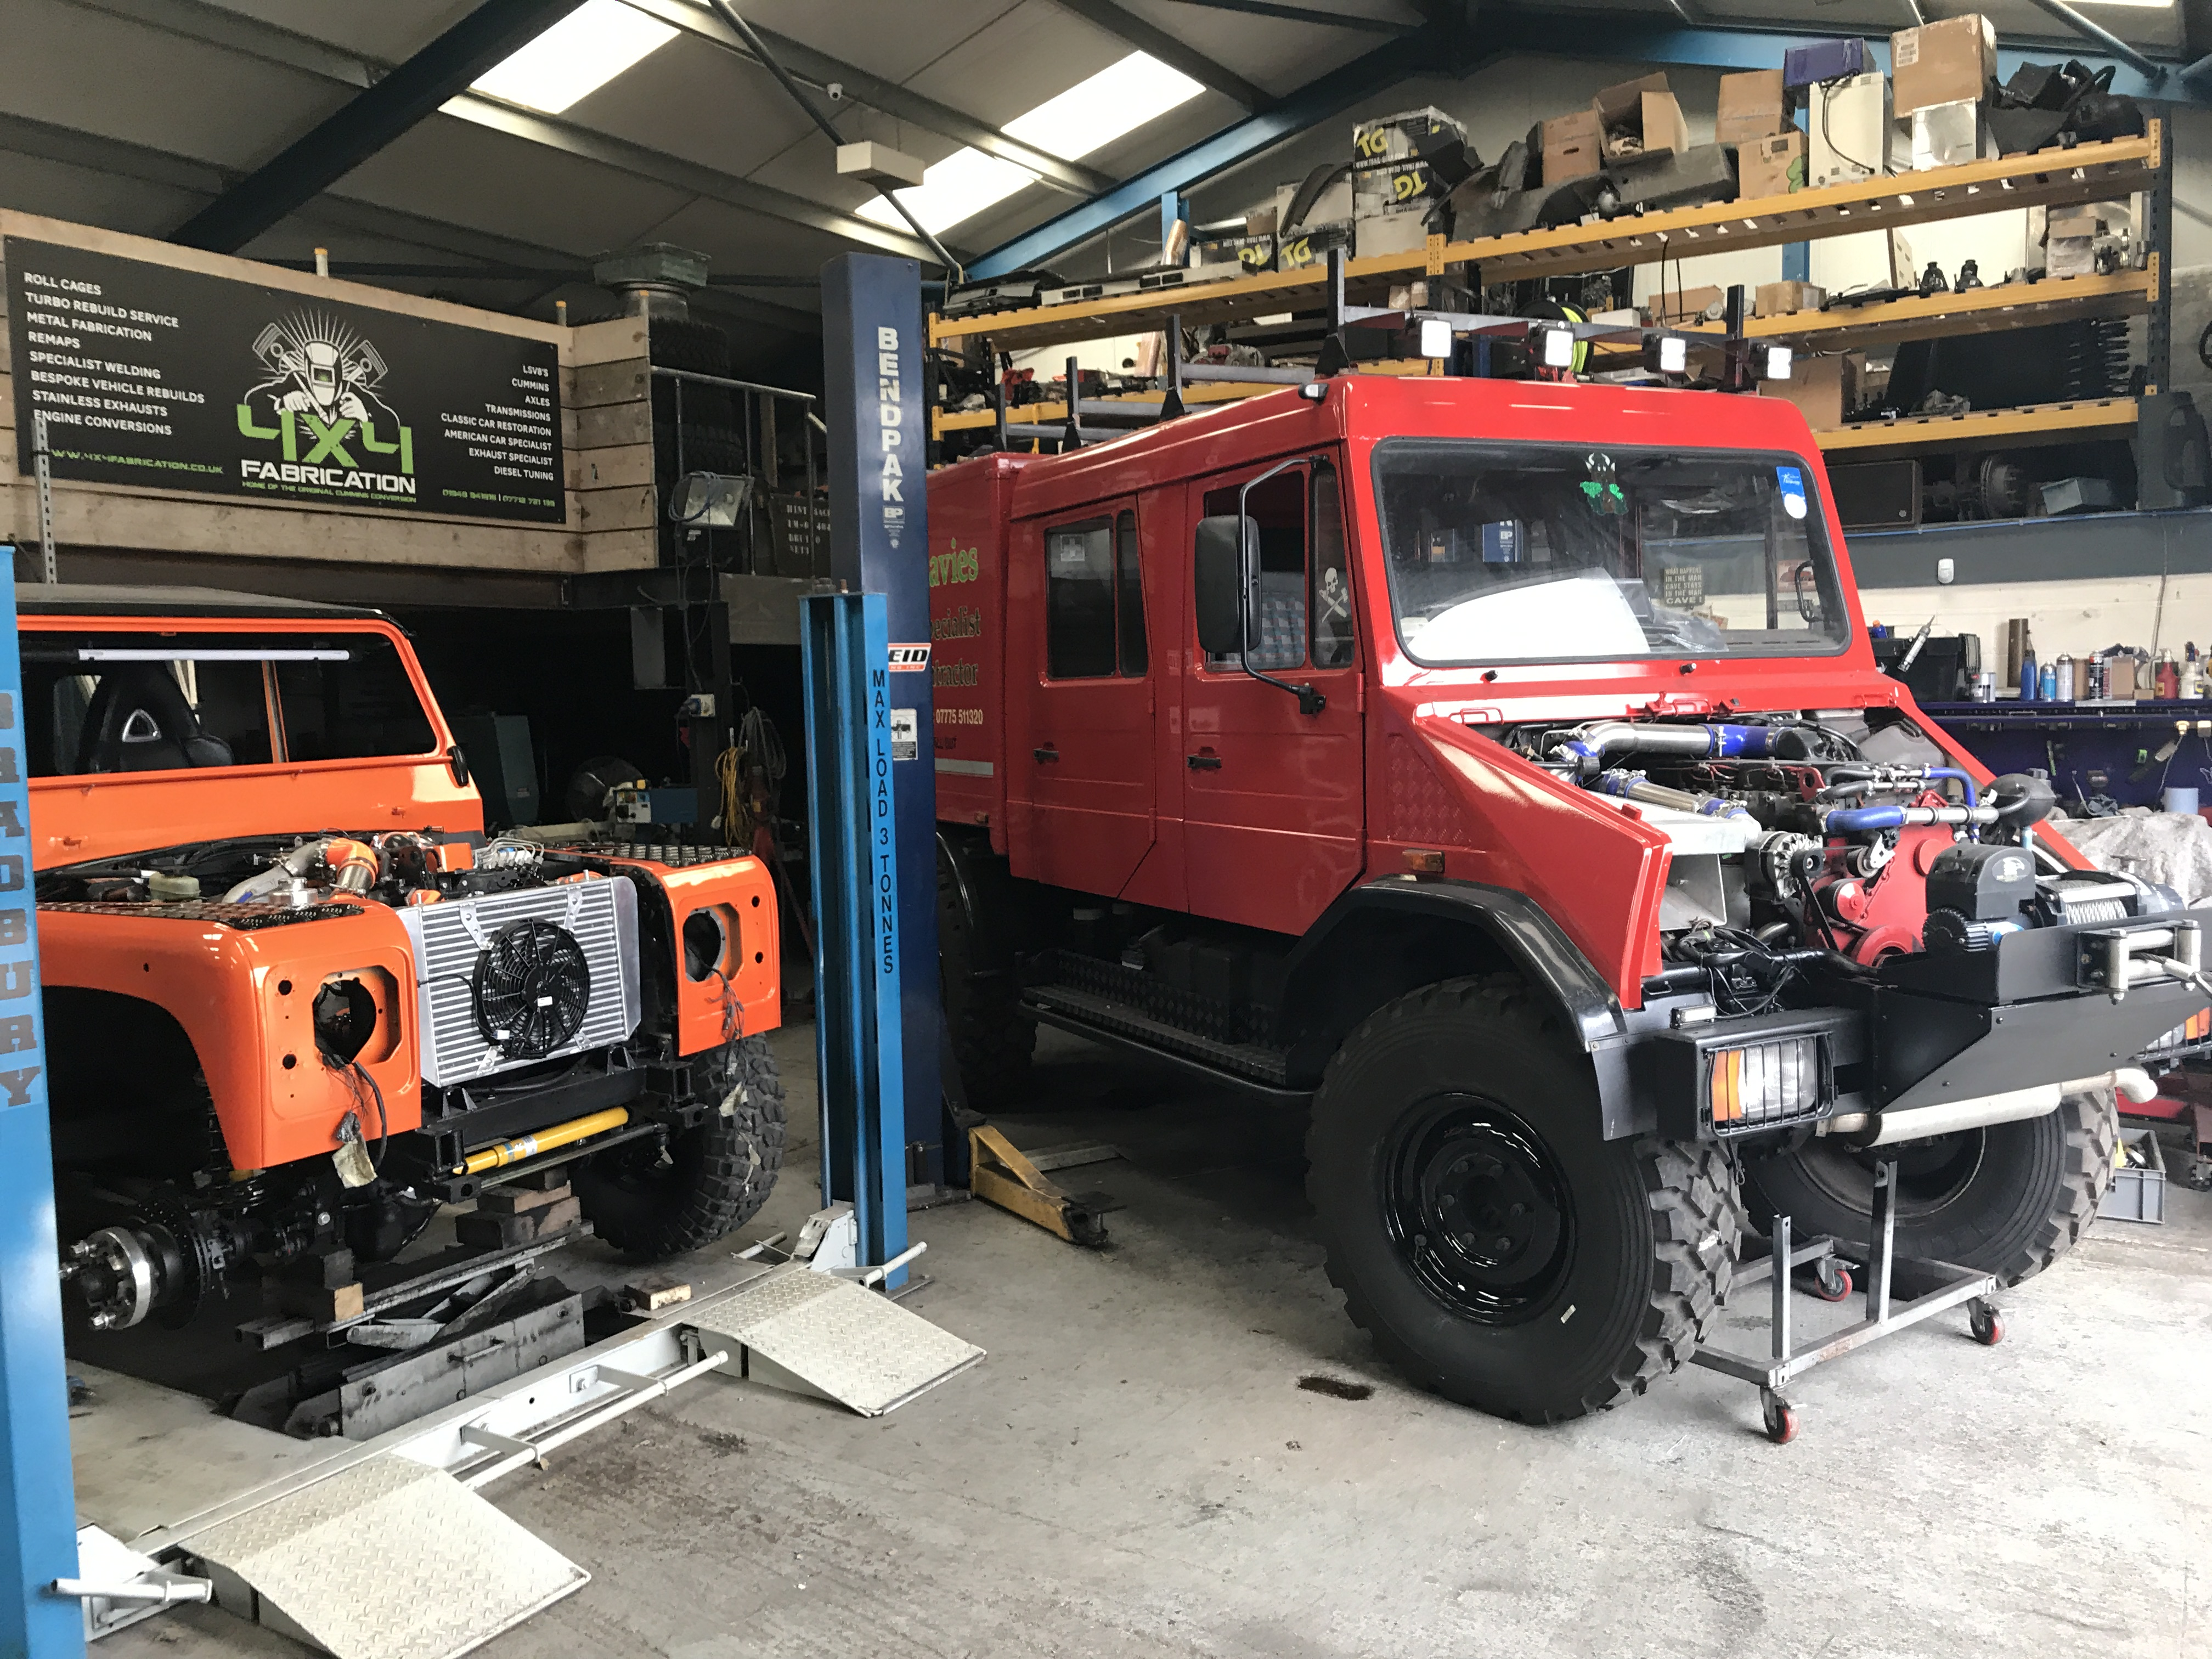 4x4 Fabrication | Cummins Engine Conversions | Shropshire UK